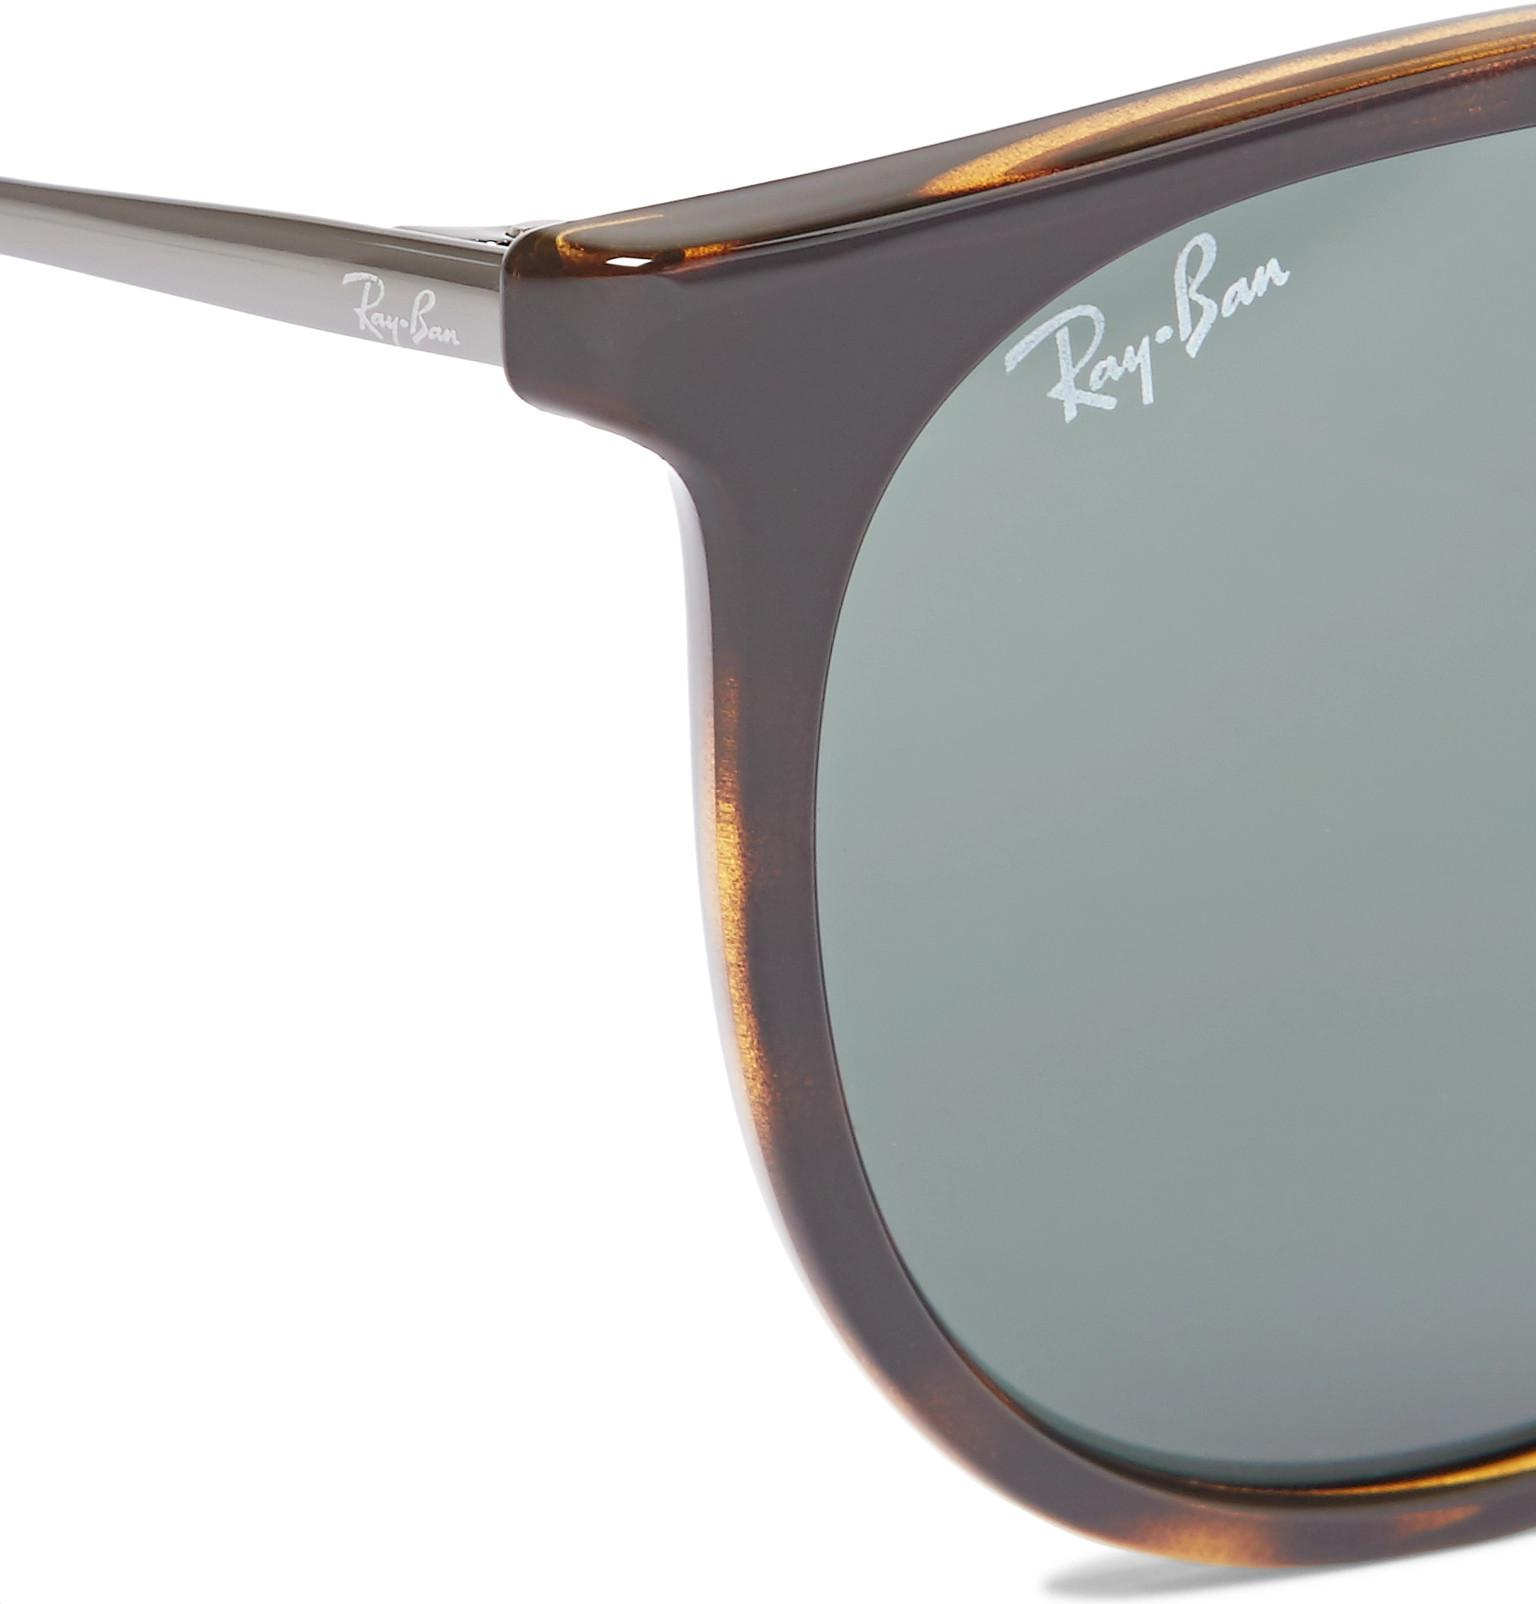 Ray-Ban Leather Erika Round-frame Tortoiseshell Acetate Sunglasses in Brown for Men